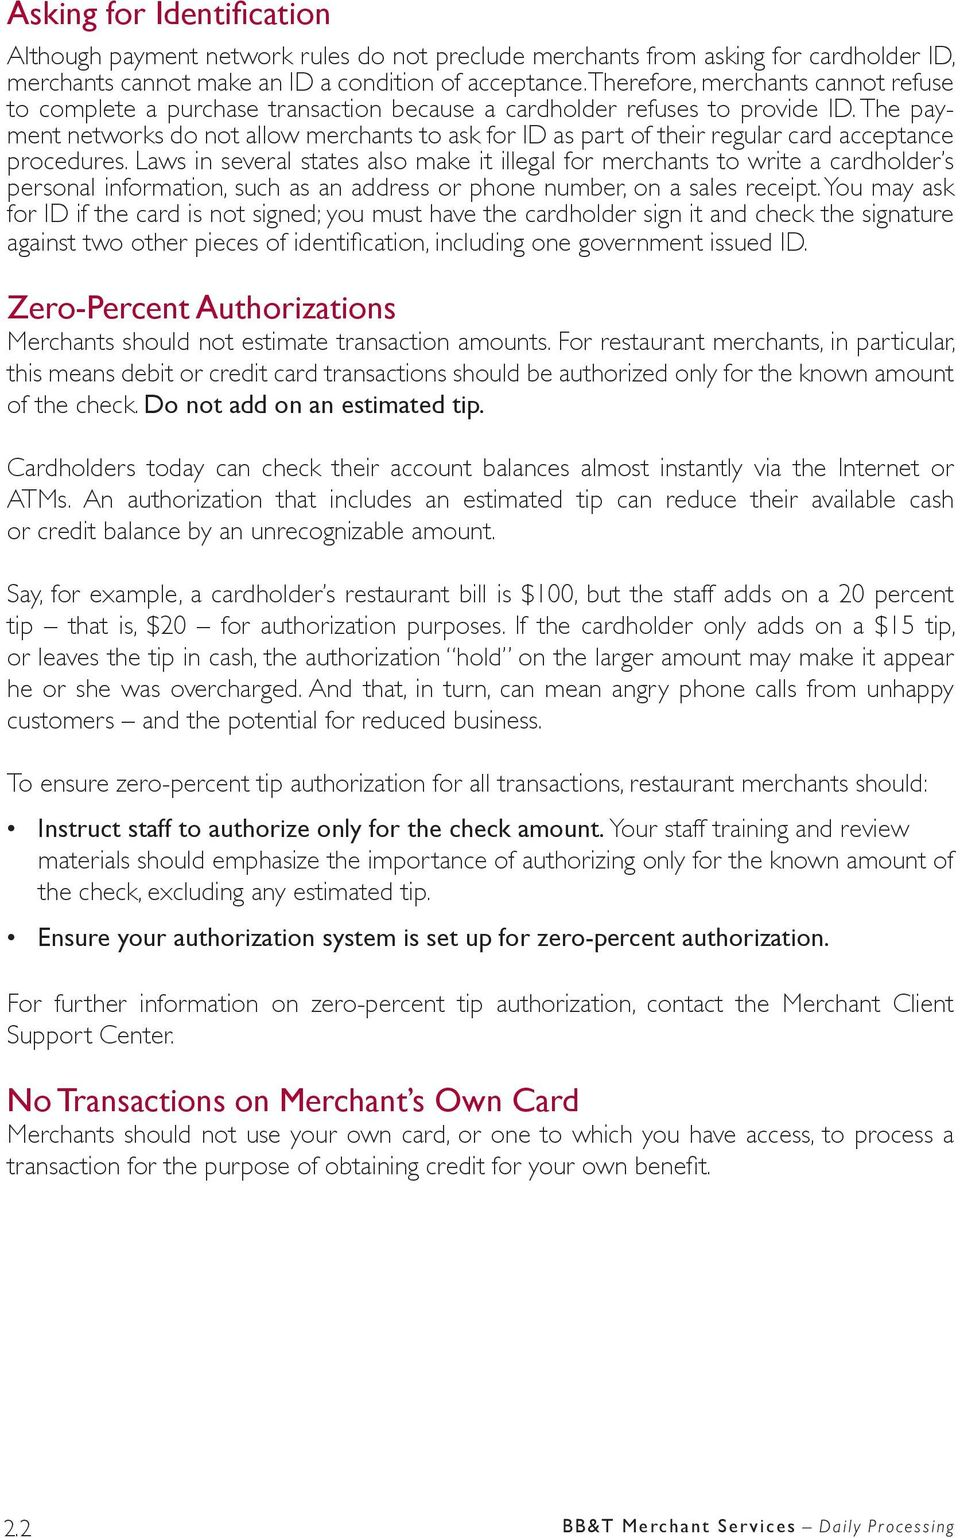 The payment networks do not allow merchants to ask for ID as part of their regular card acceptance procedures.